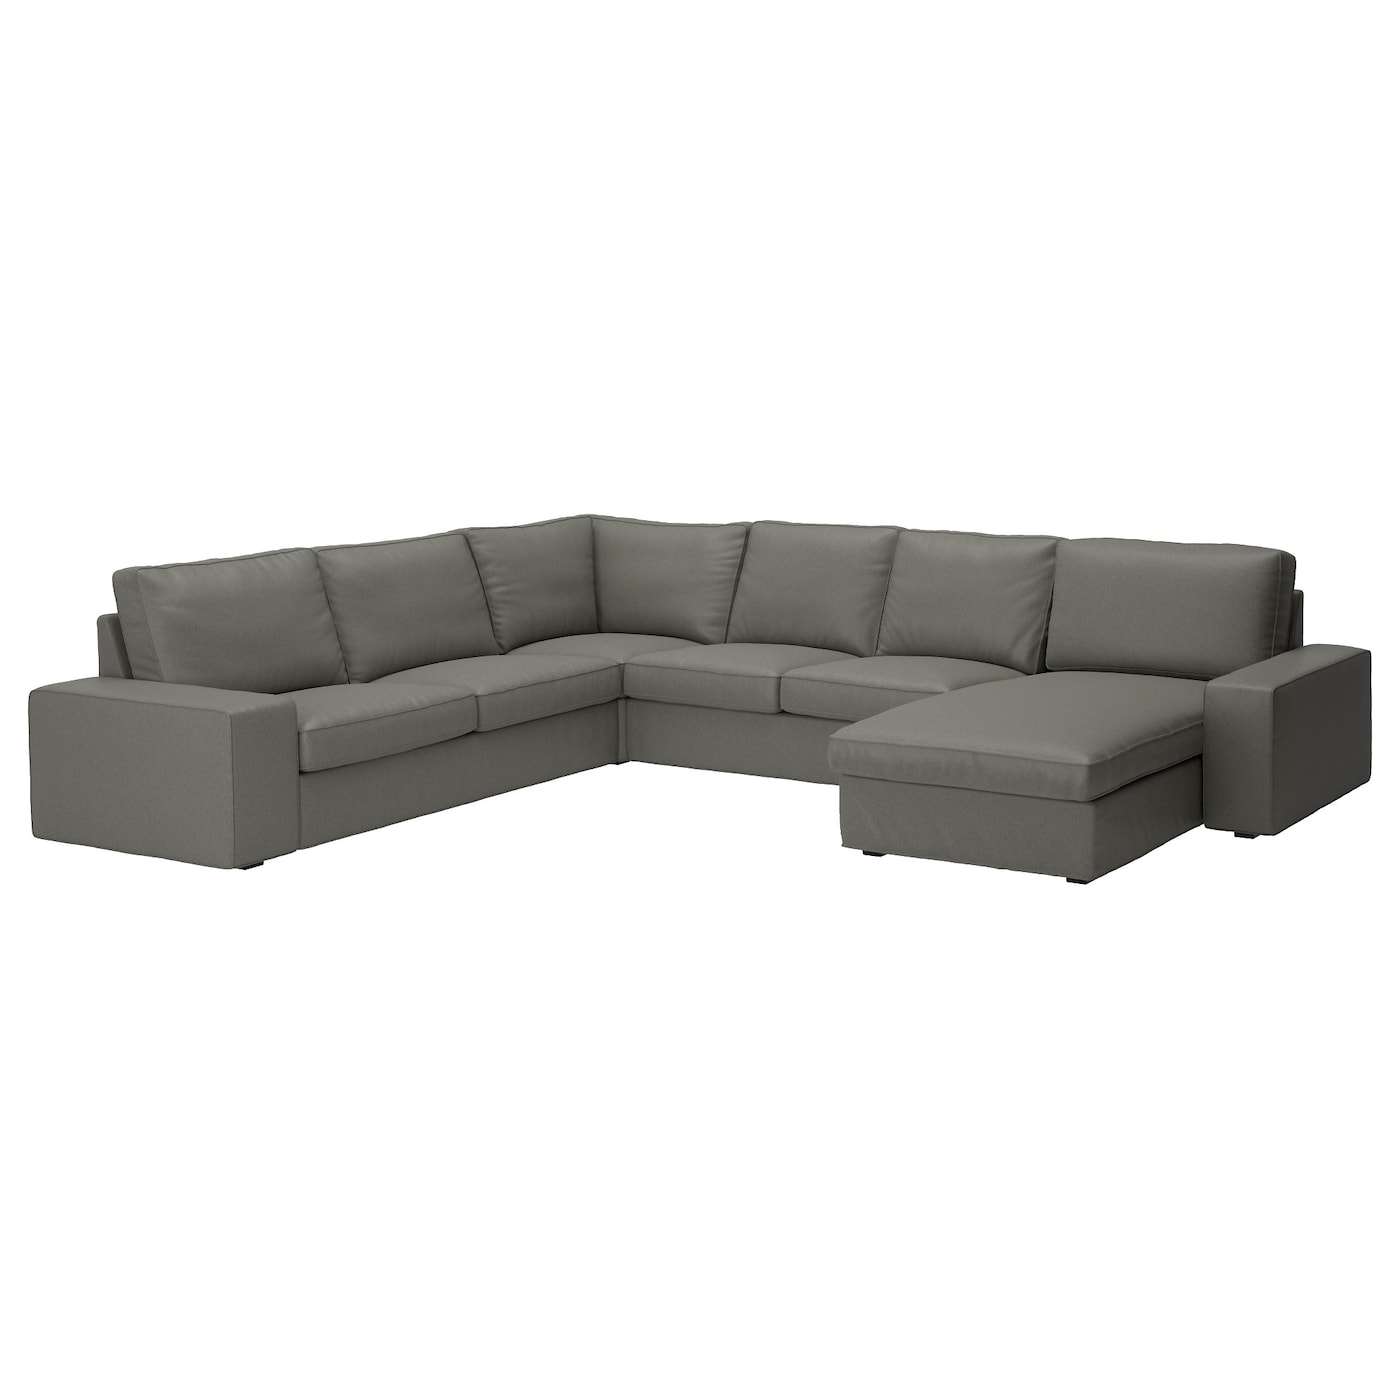 kivik corner sofa 2 2 with chaise longue borred grey green. Black Bedroom Furniture Sets. Home Design Ideas